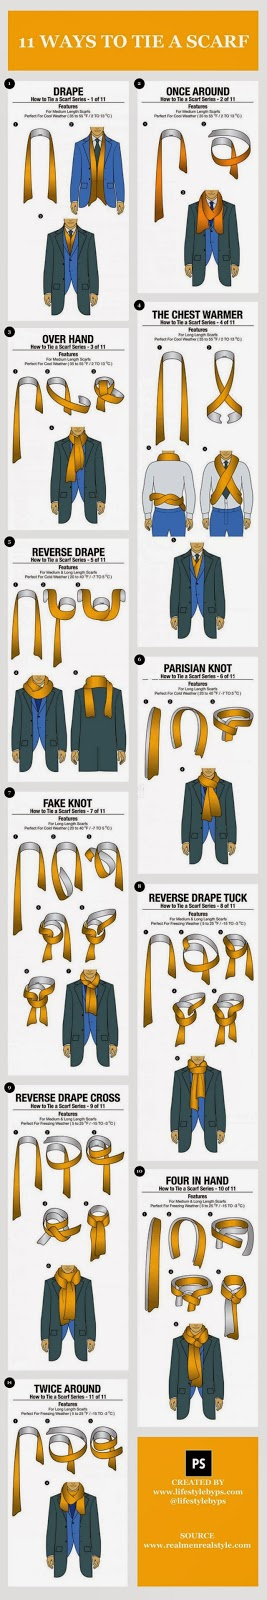 http://dailyinfographic.com/11-simple-ways-to-tie-a-scarf-infographic